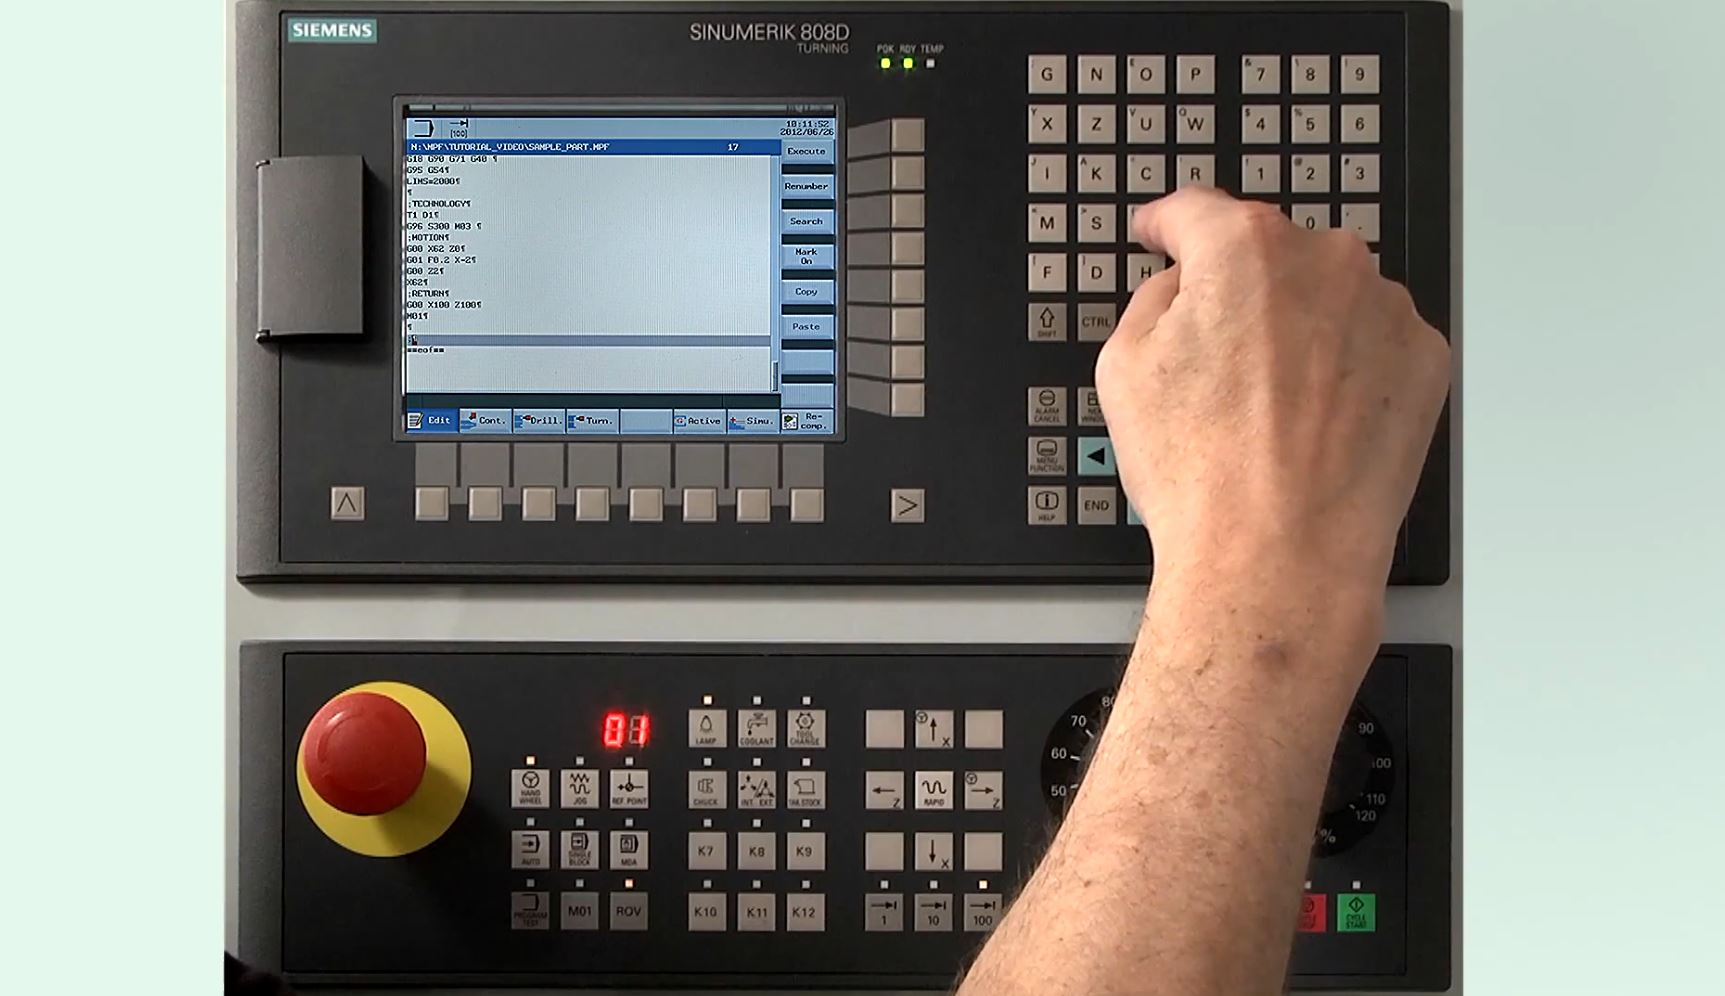 VIDEO: What You Need to Know About SINUMERIK CNC Controls